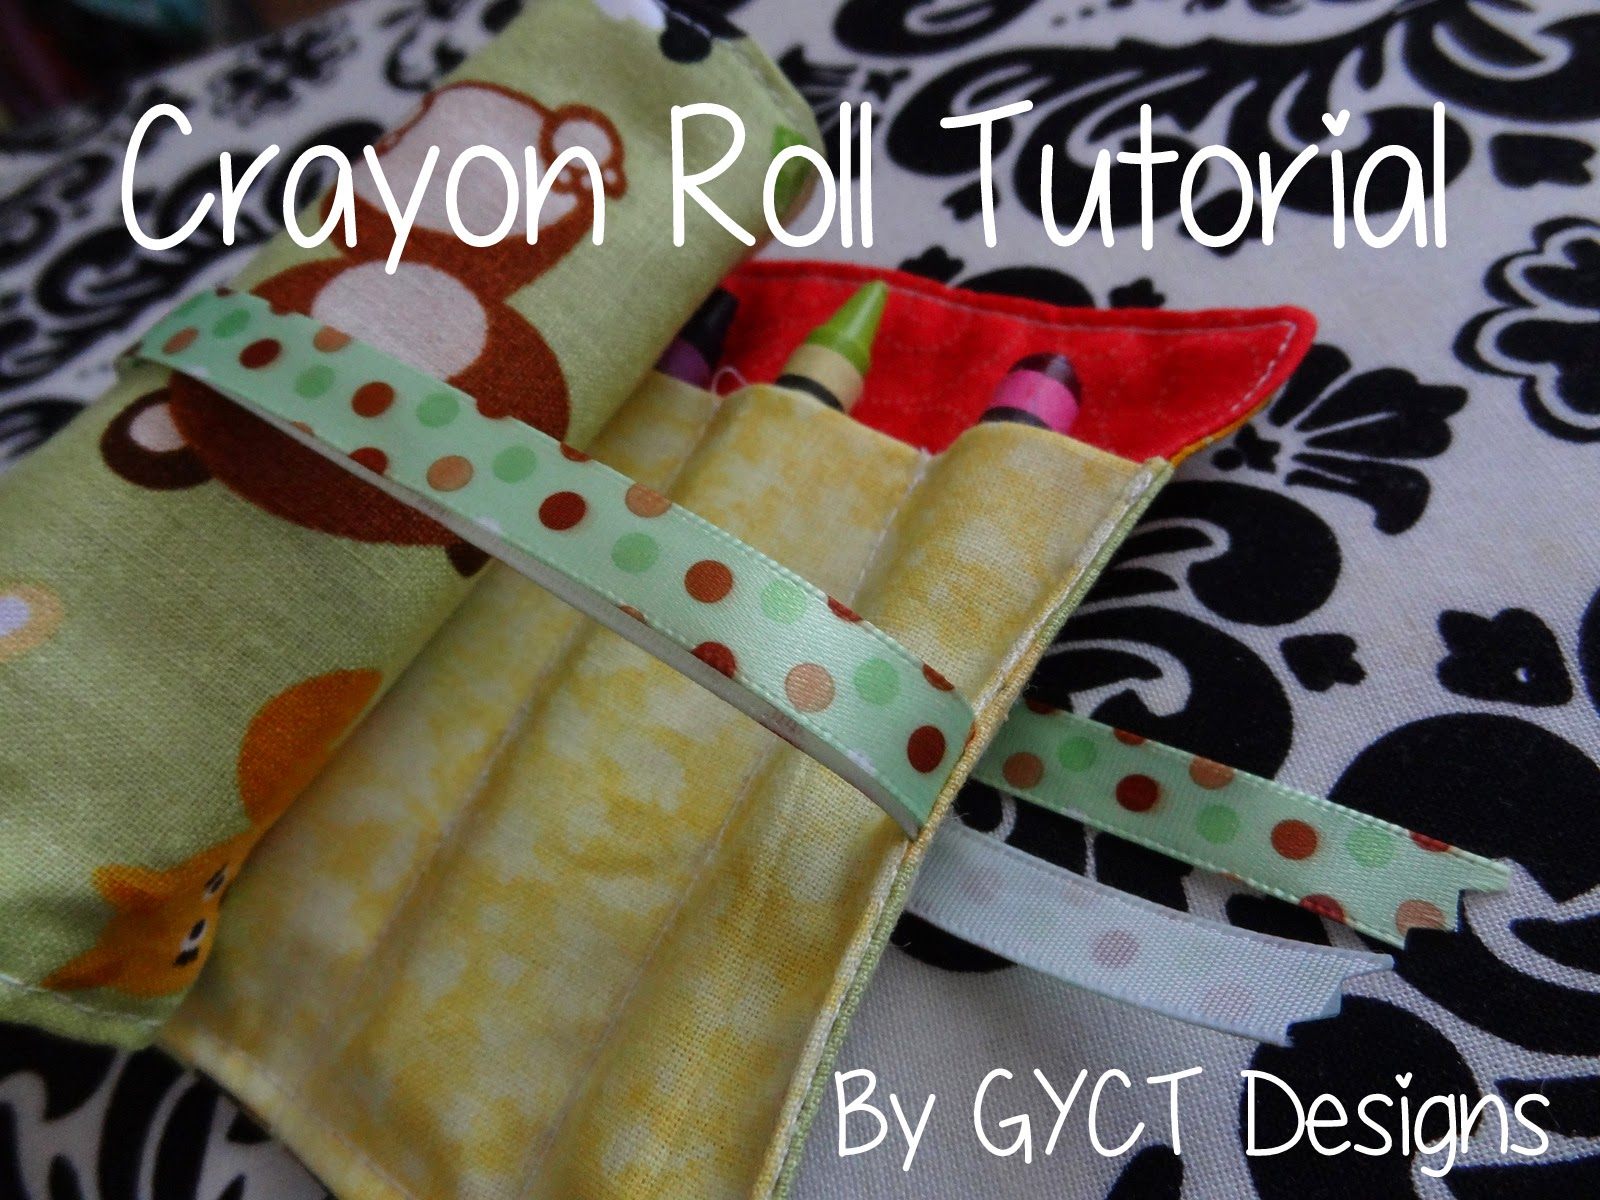 Crayon Roll Tutorial and Free Pattern